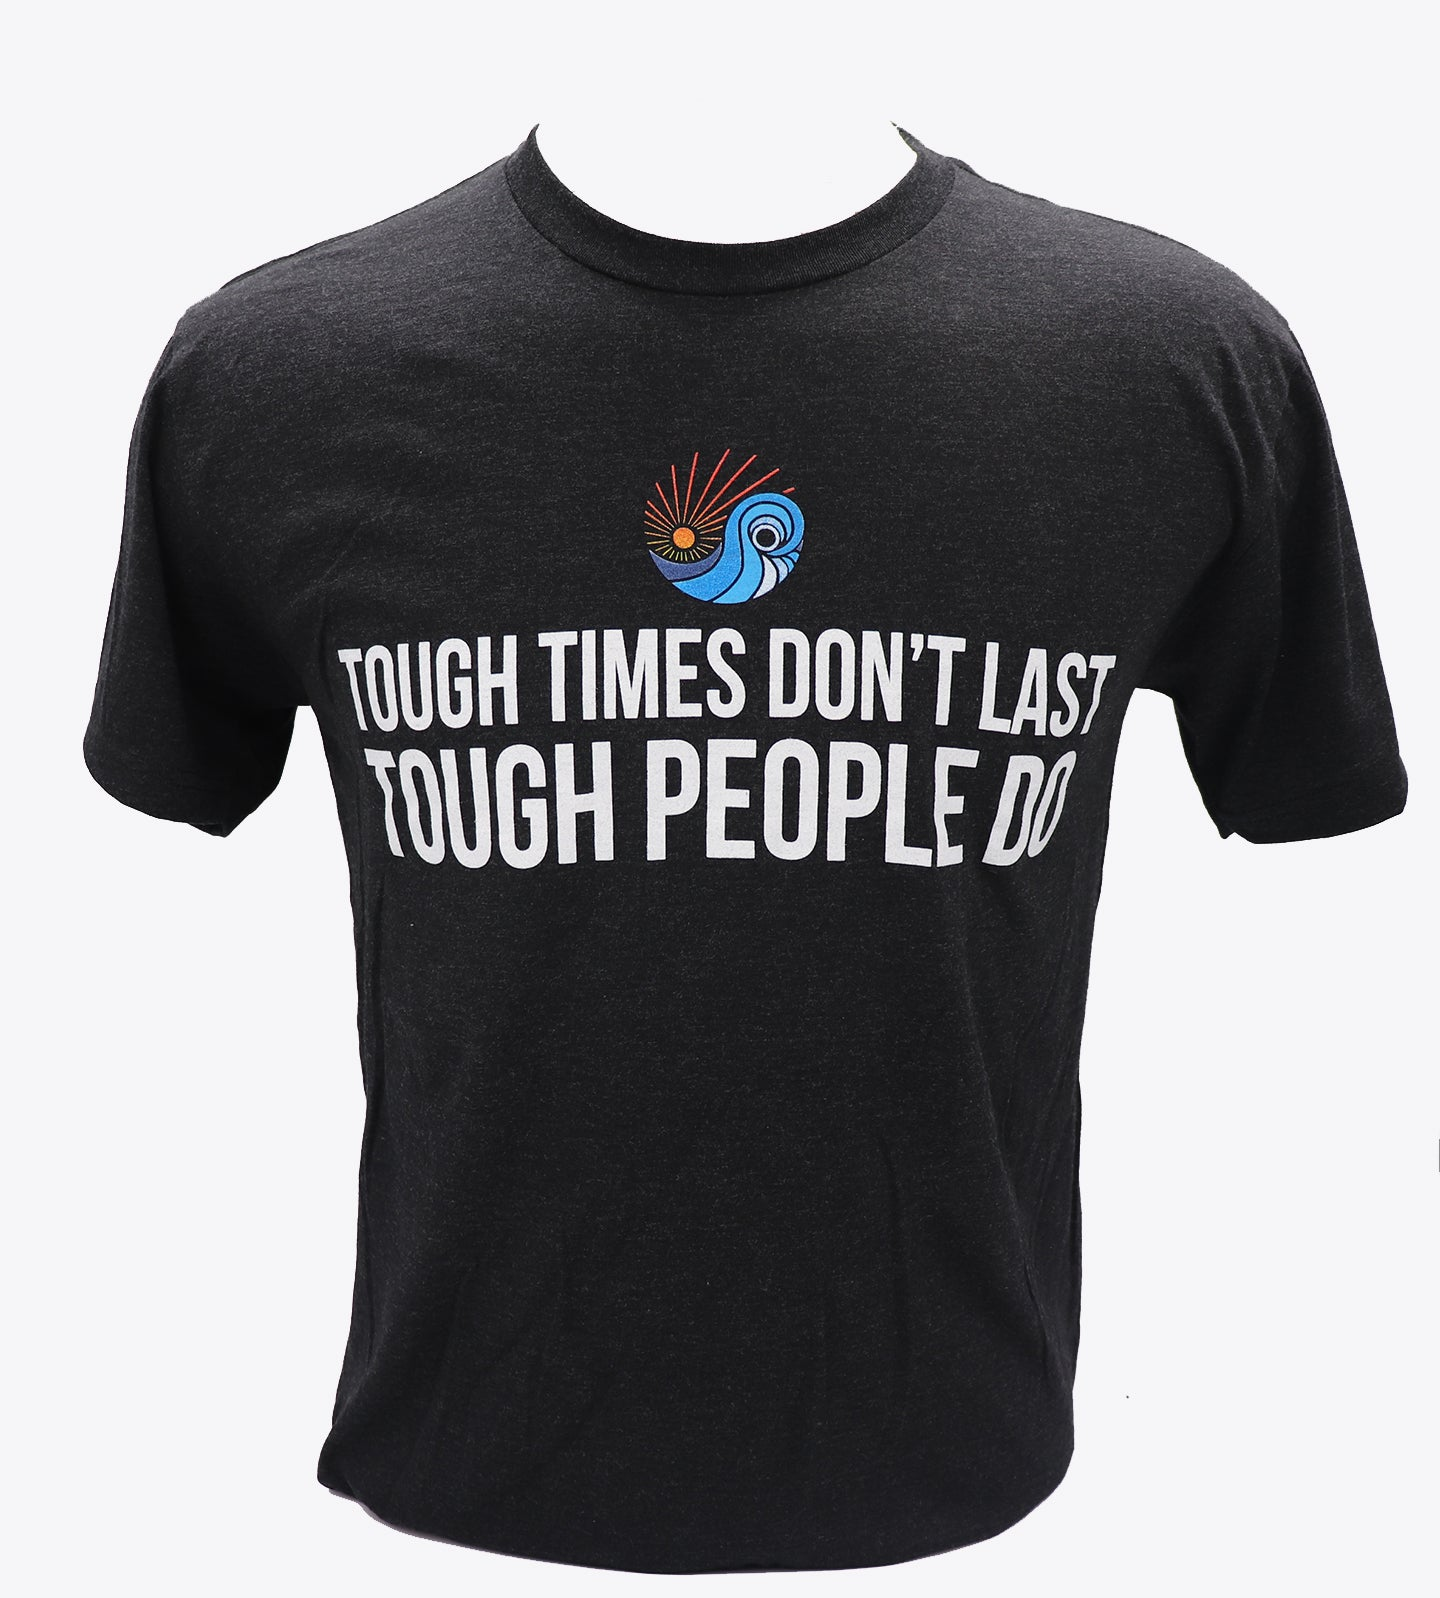 Heather black shortsleeve t-shirt with Tough times don't last tough people do and sdtc's logo centered above the verbiage